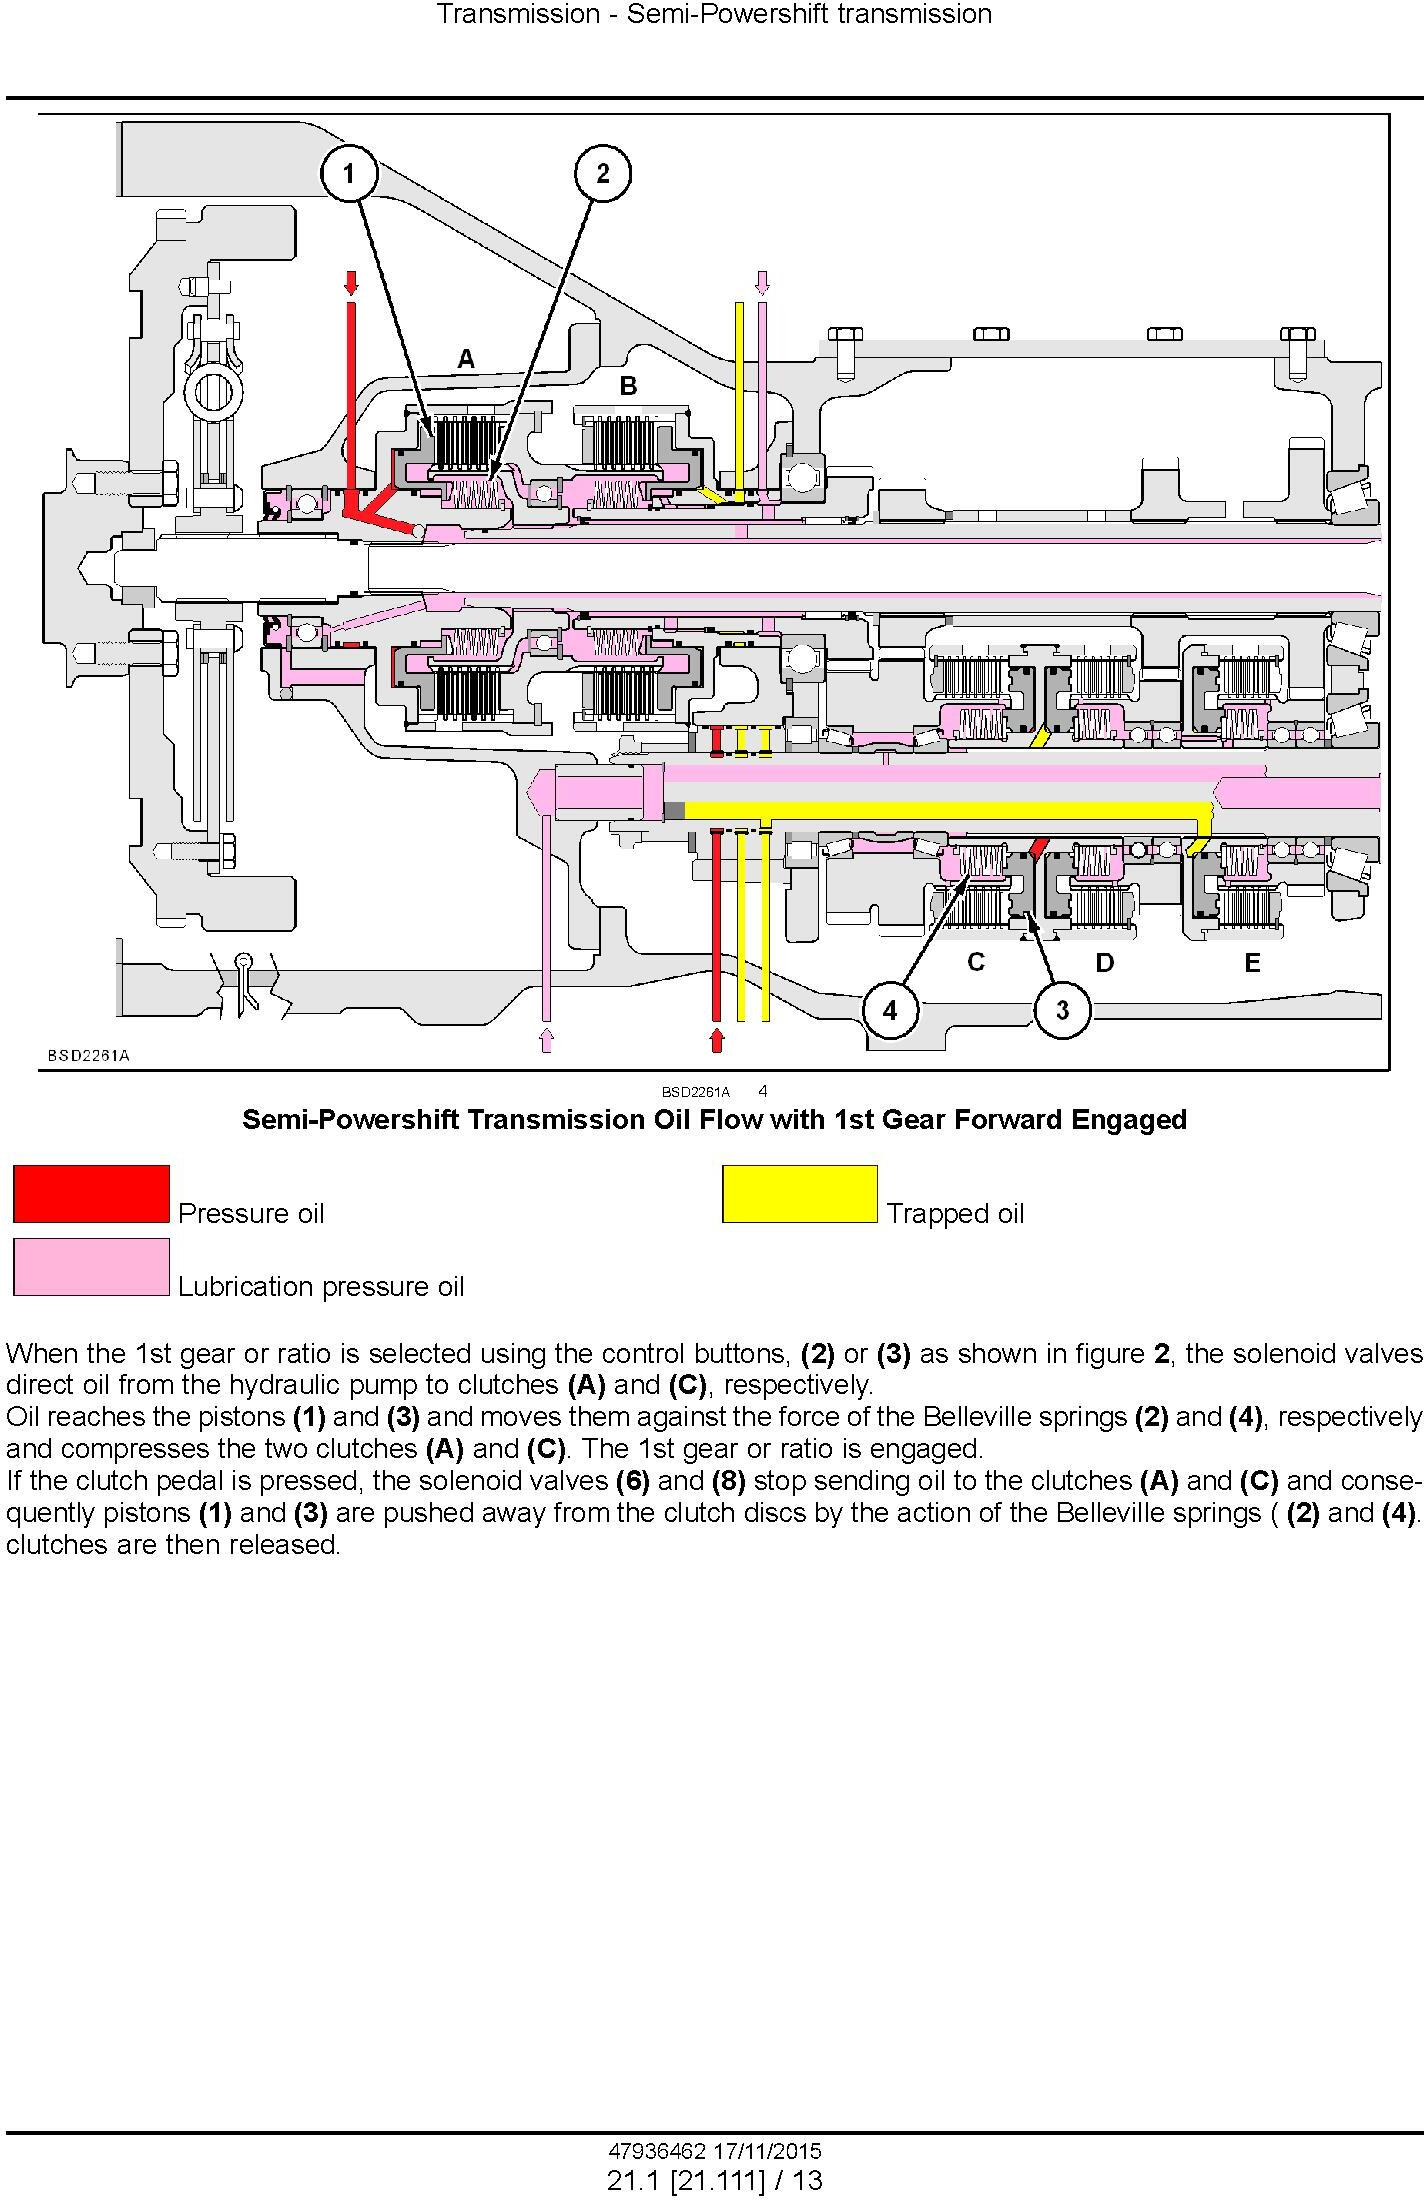 New Holland T7.175, T7.190, T7.210, T7.225 AutoCommand Tier 4B (final) Tractor Service Manual (USA) - 2